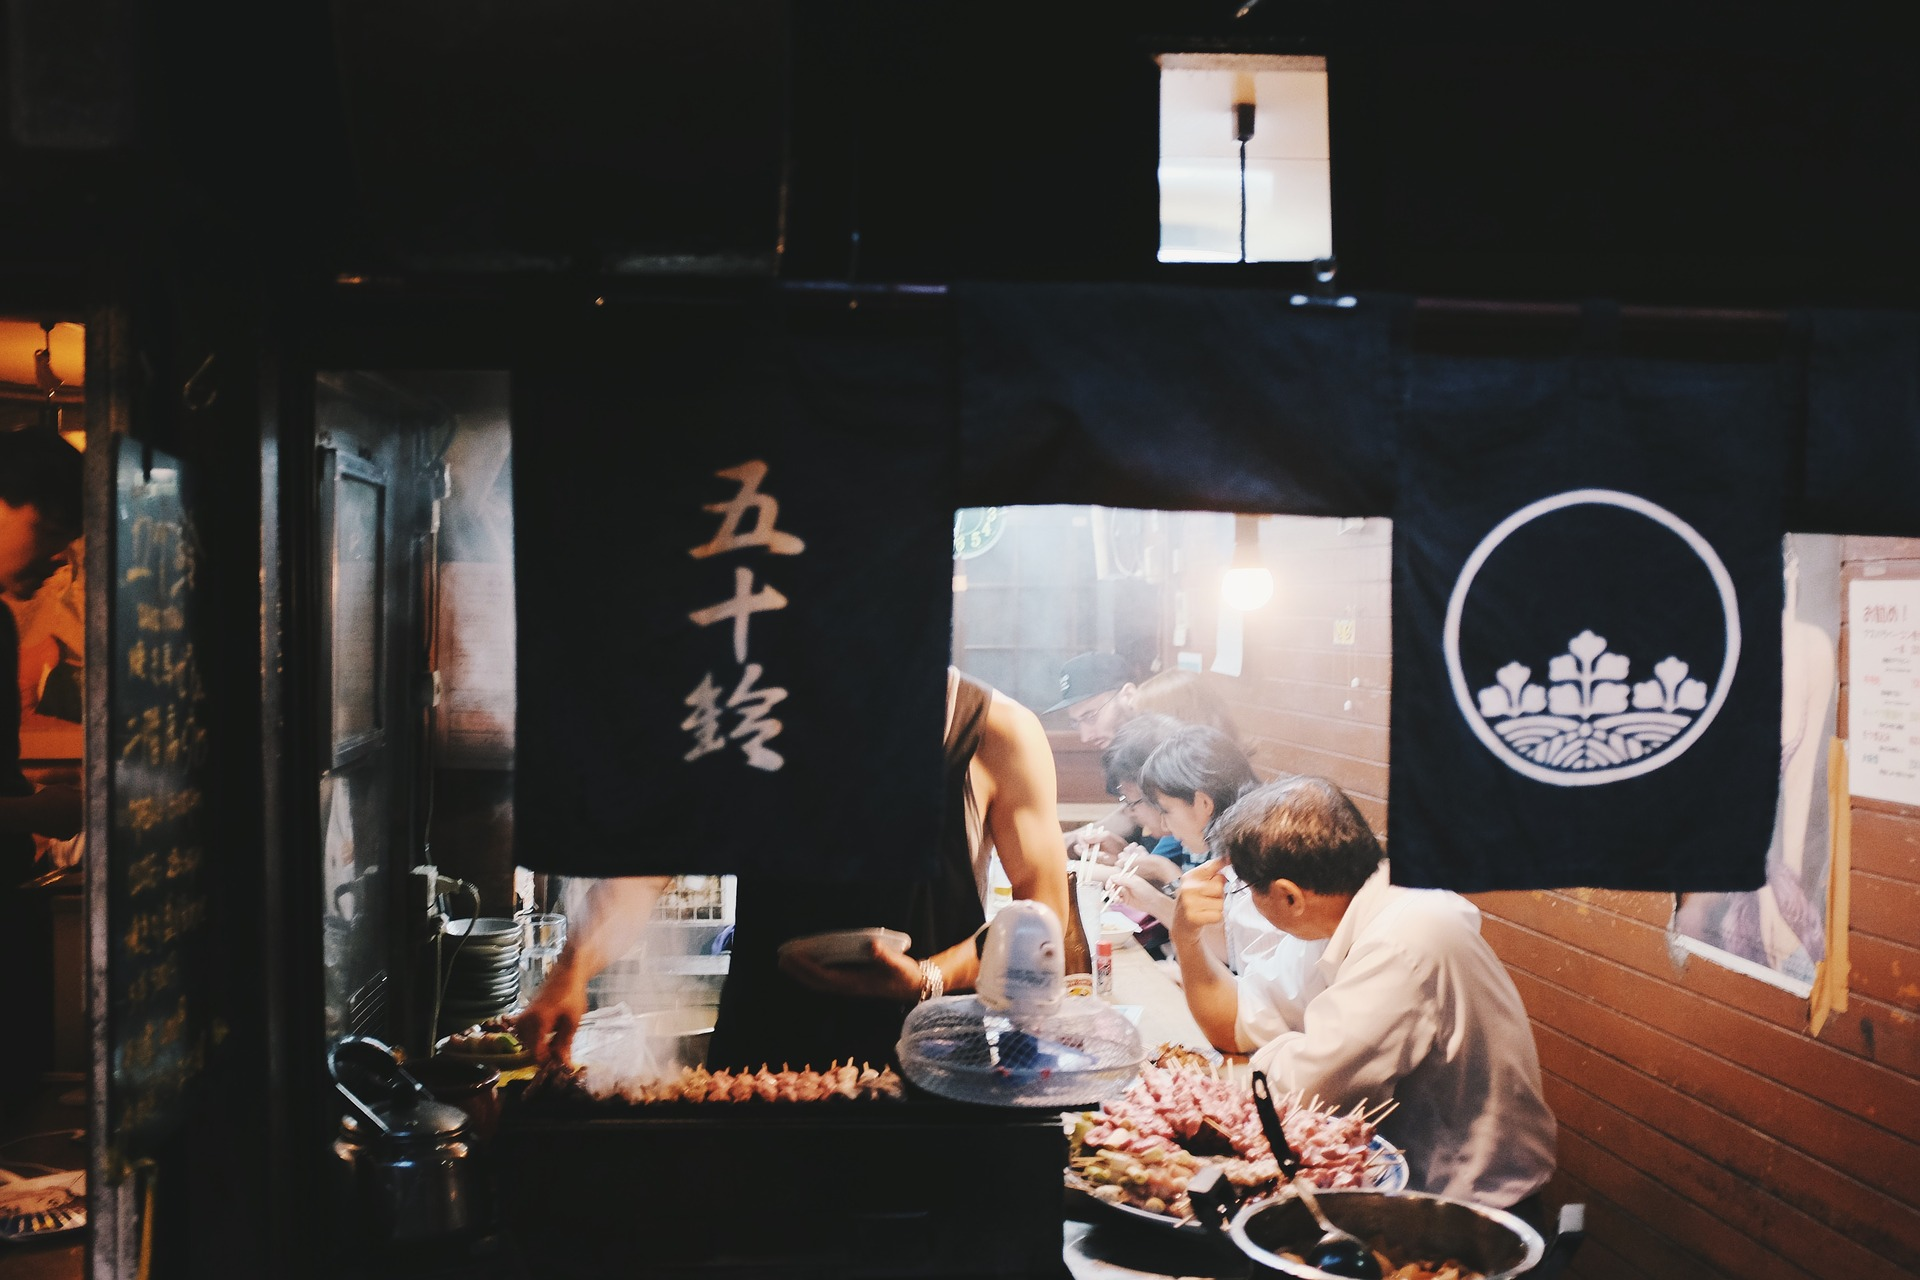 A yakitori food stall somewhere in Japan